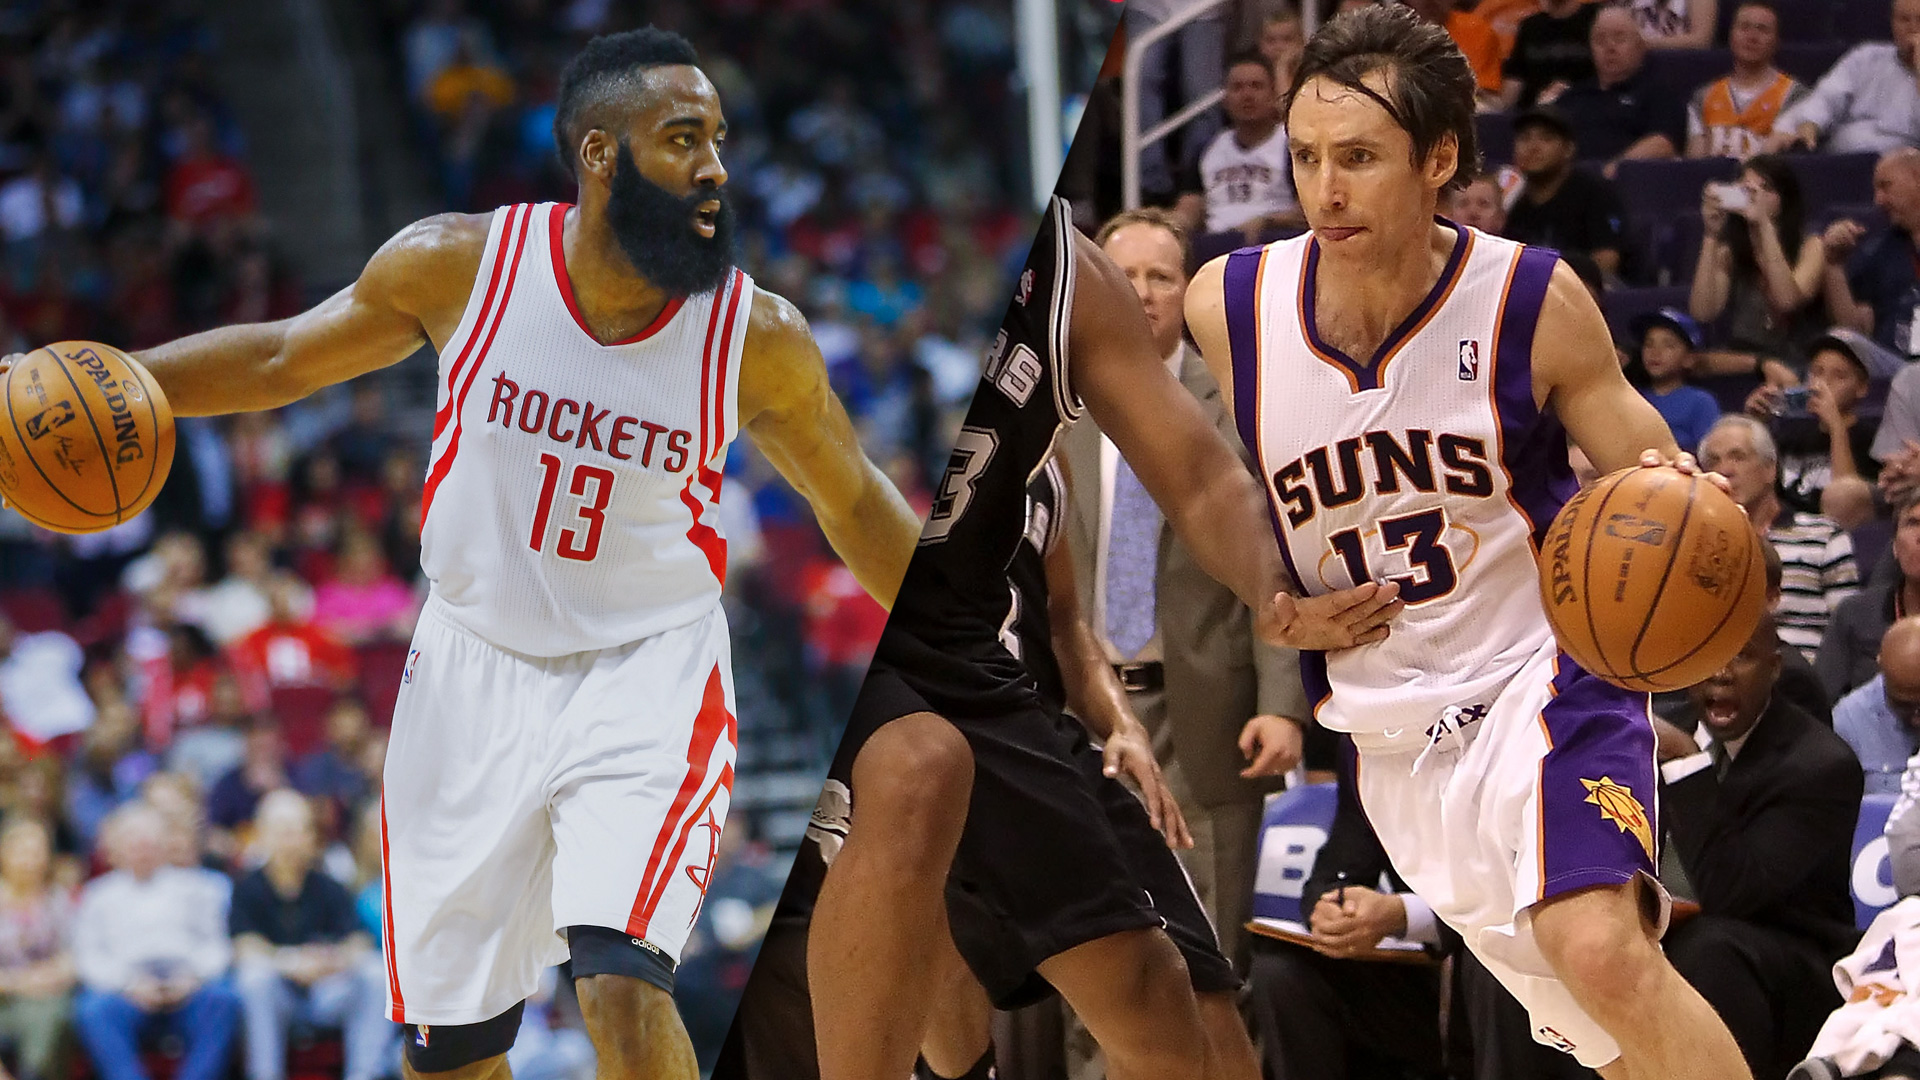 Split-james-harden-steve-nash-082116-getty-ftrjpg_z1ux8mv2qfkz1l5q88nelkfbx